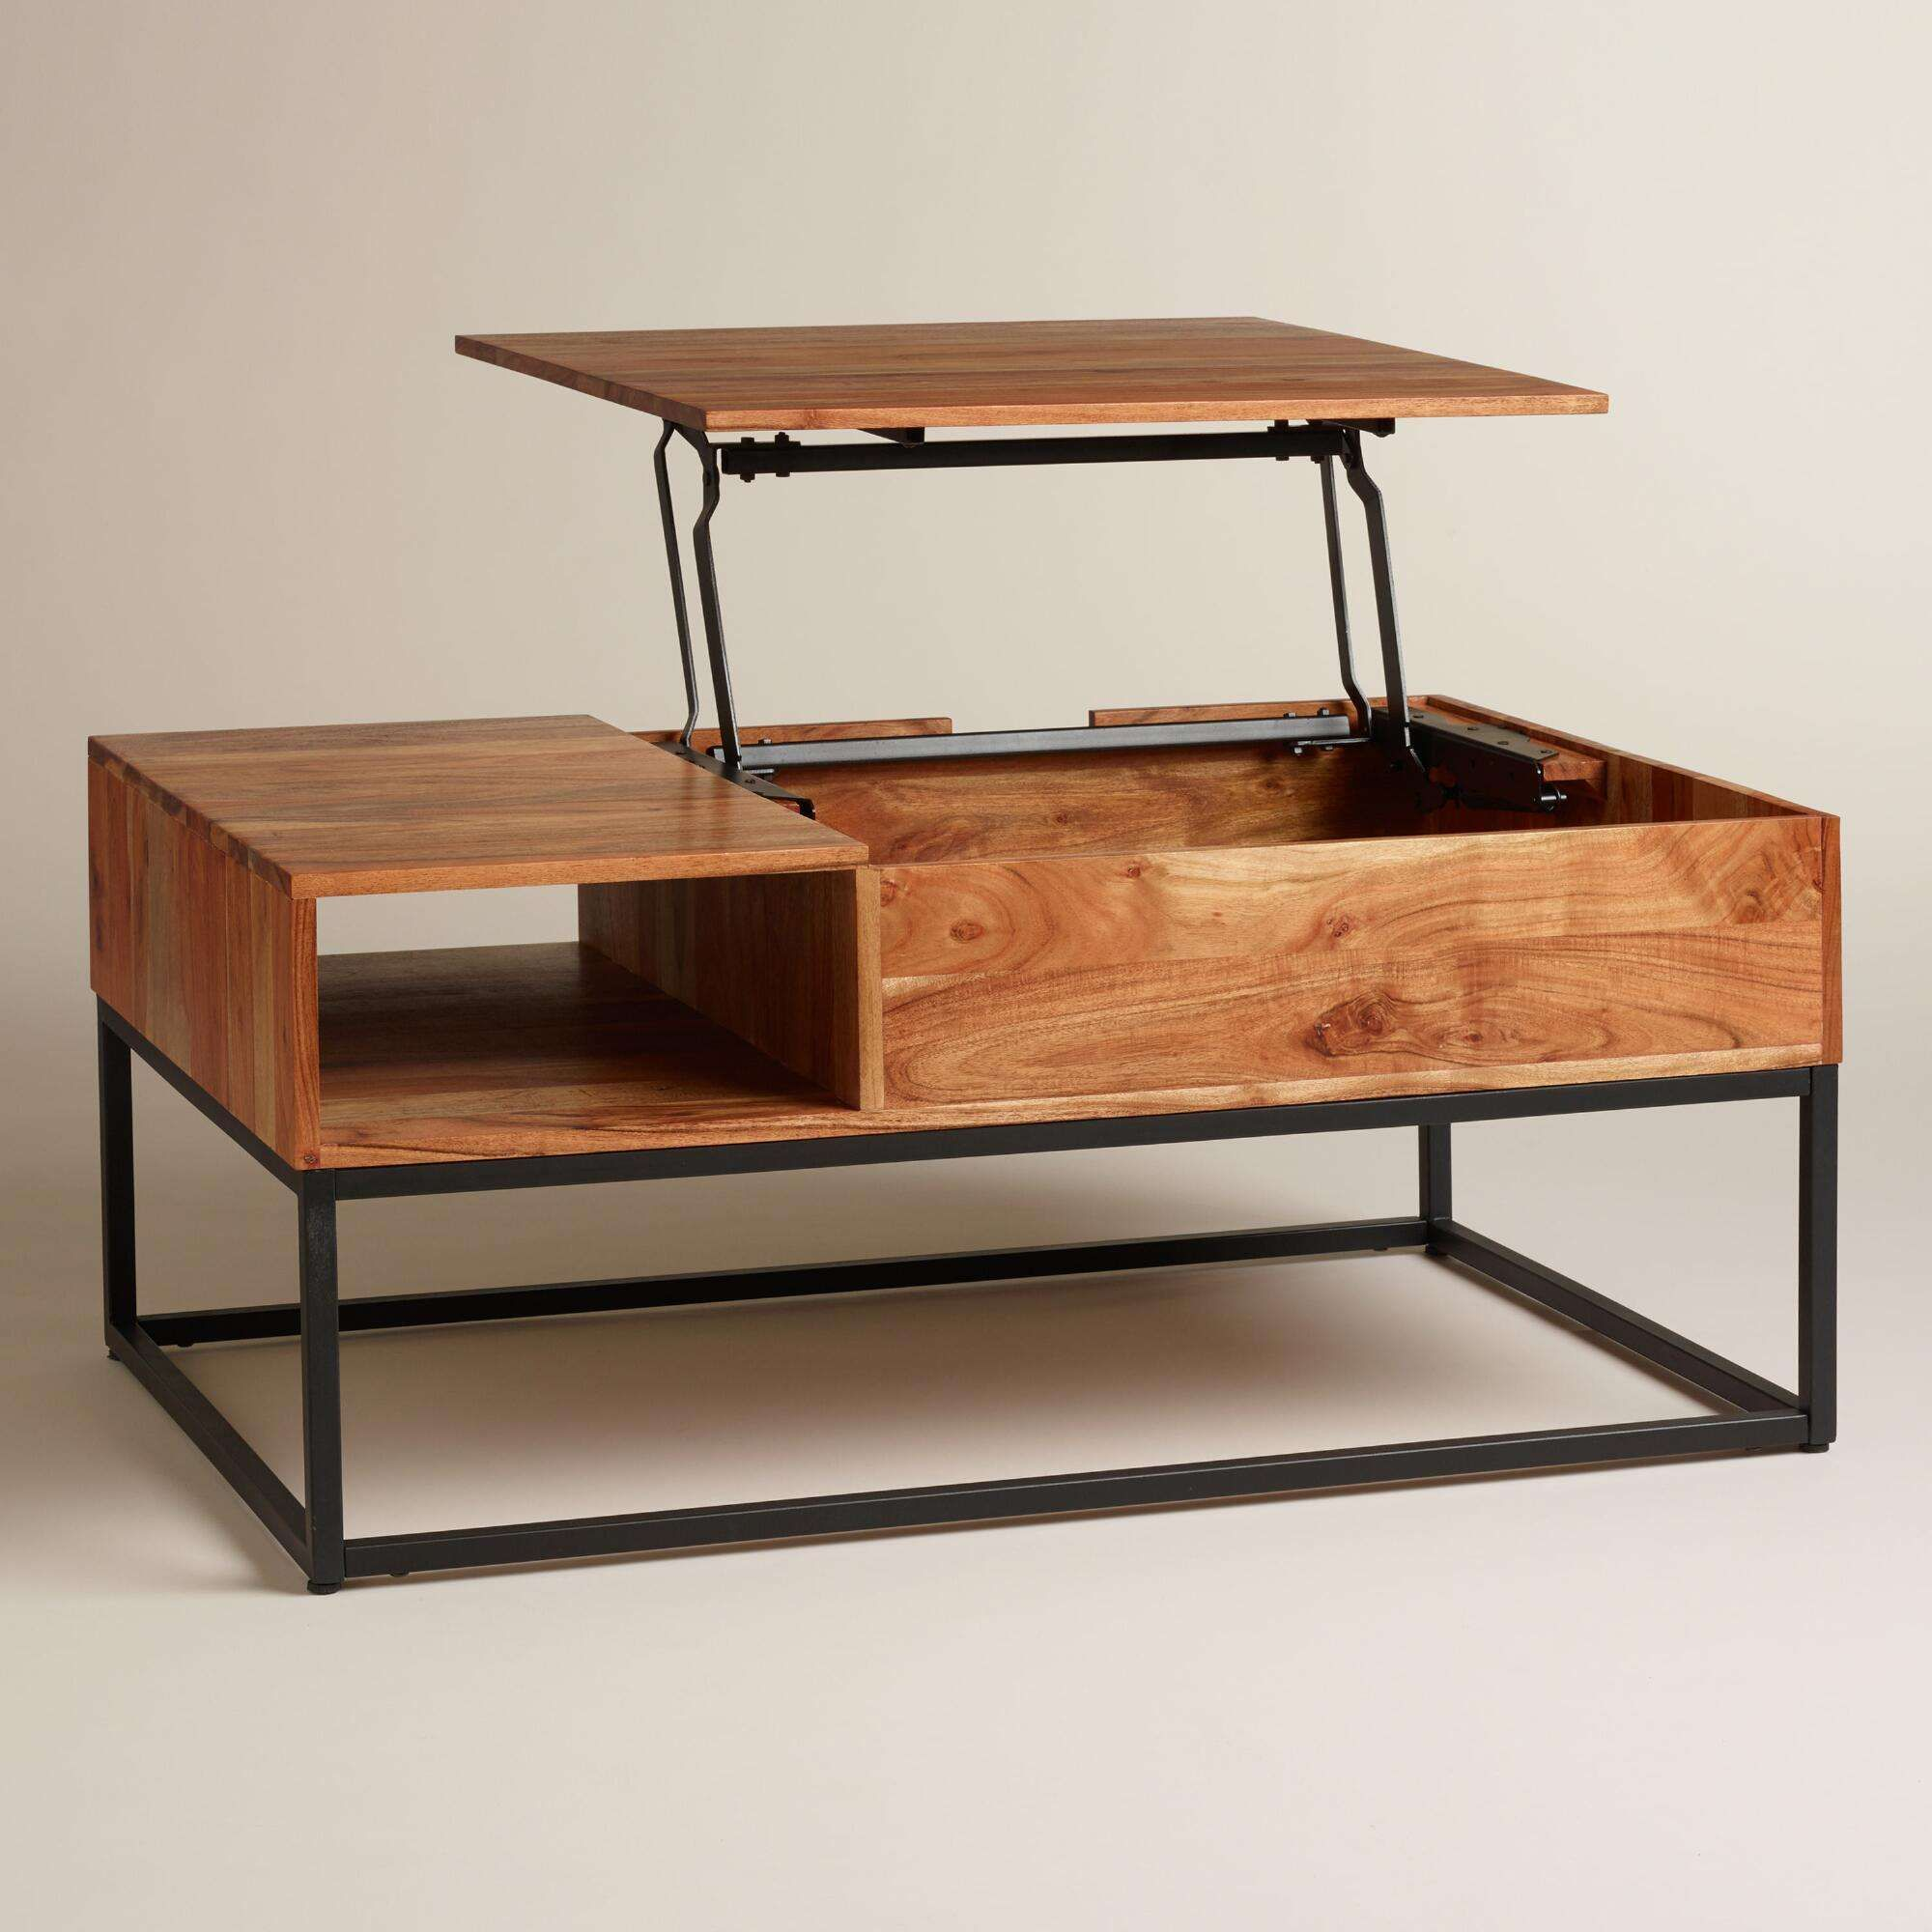 richly grained acacia wood sleek metal base there more outdoor side table with storage from source best ideas antique kidney sectional small copper purple accent ashley nesting